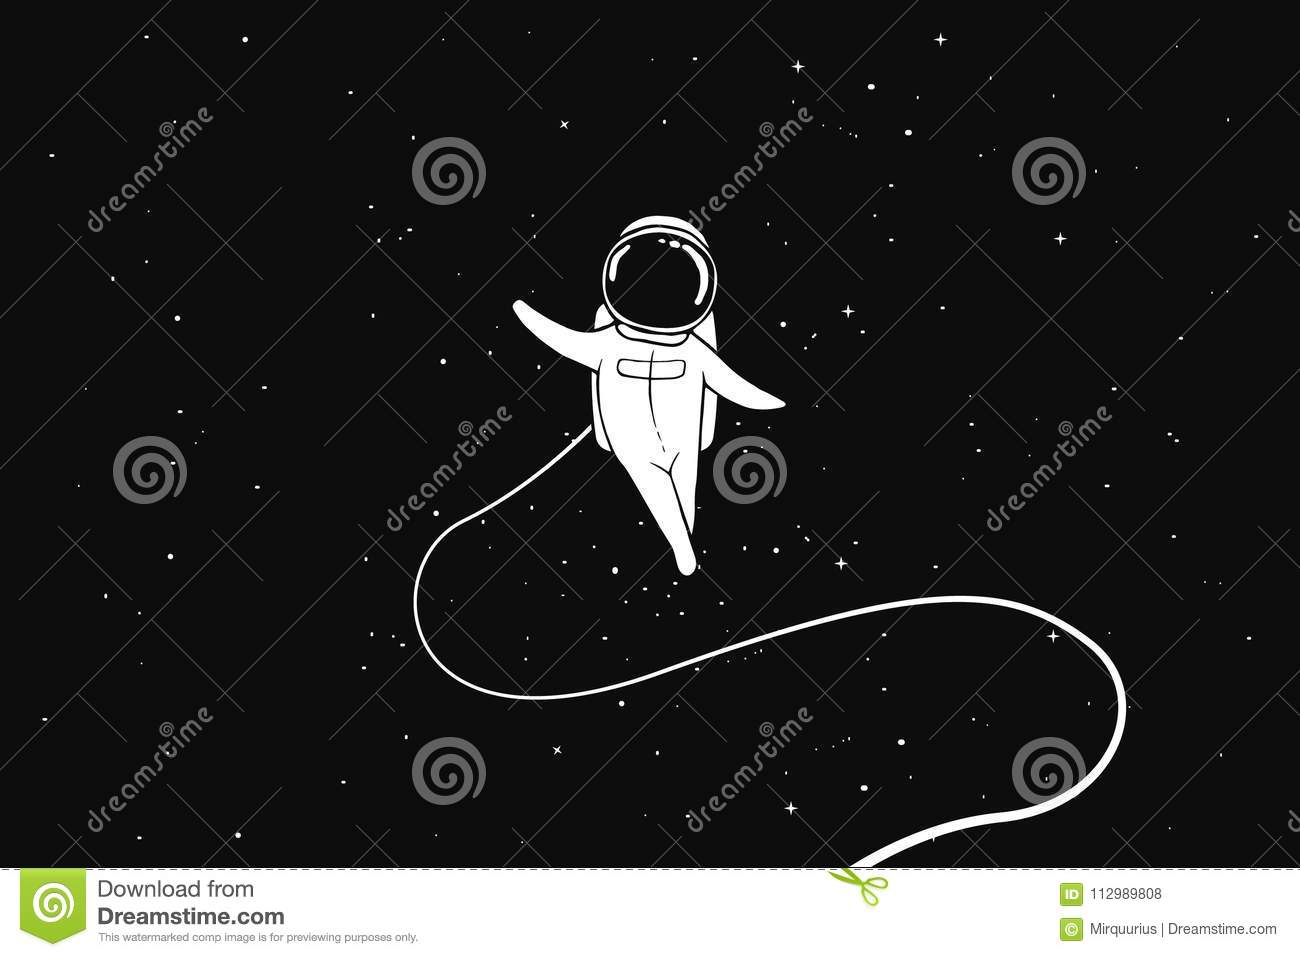 Astronaut flies alone in outer space